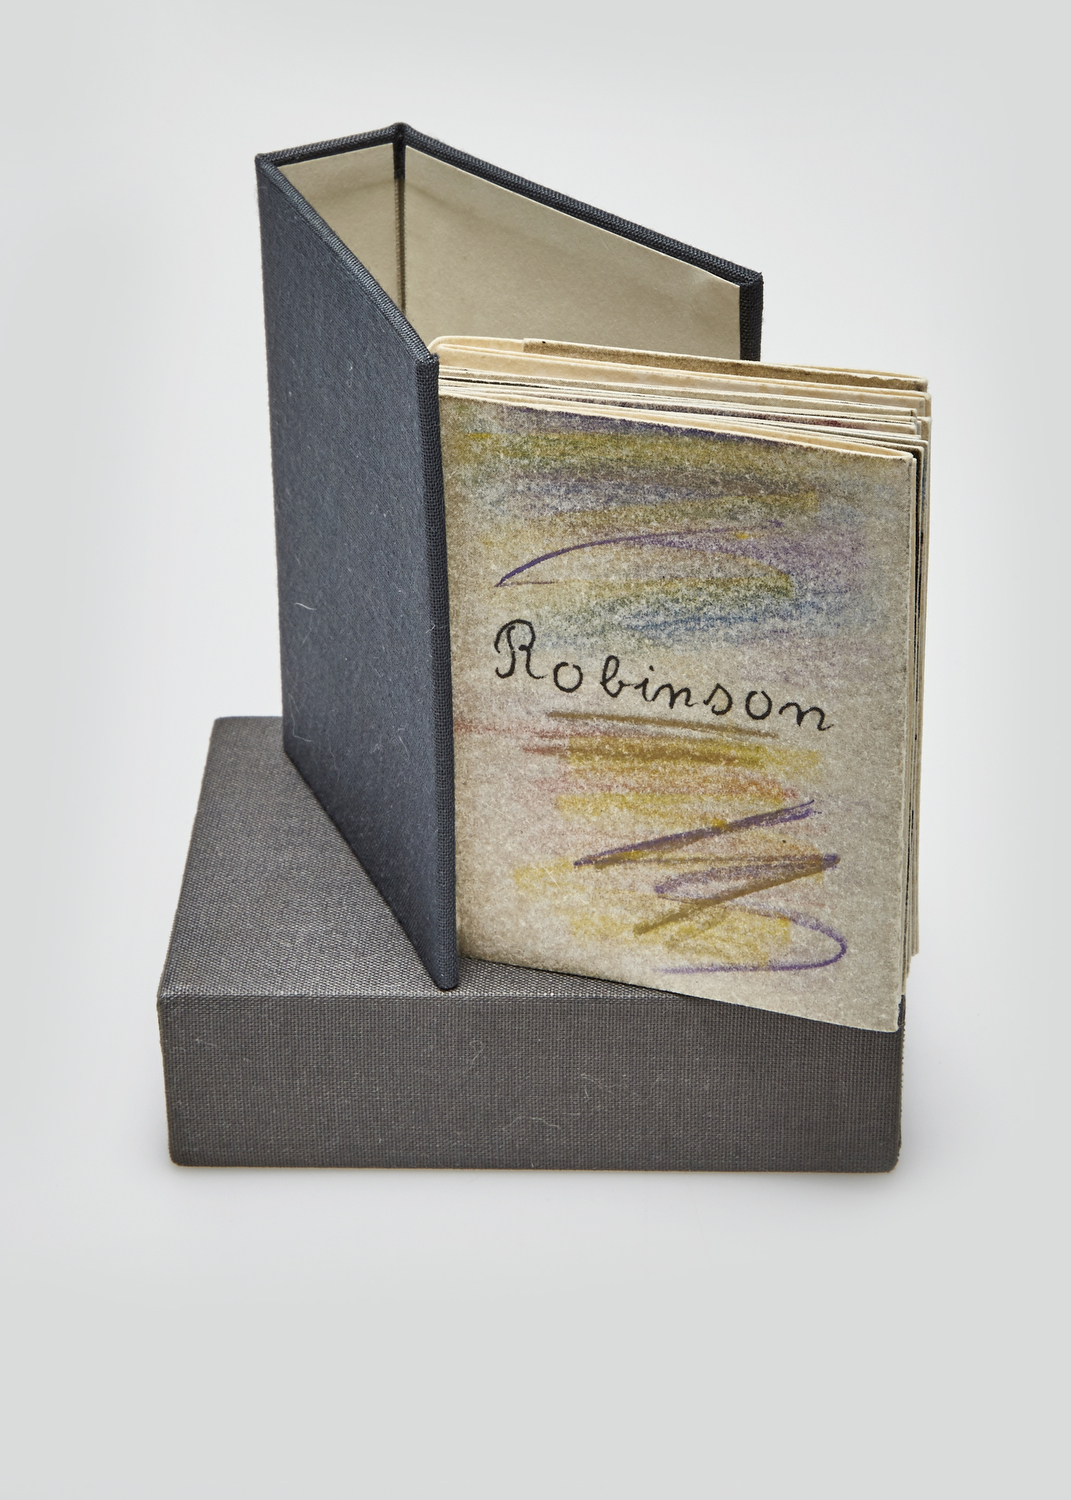 Robinson    Text by Guy Marester and engraving by Julius Baltazar  1978 | 10 x7 cm | engraving and typography | 70 prints